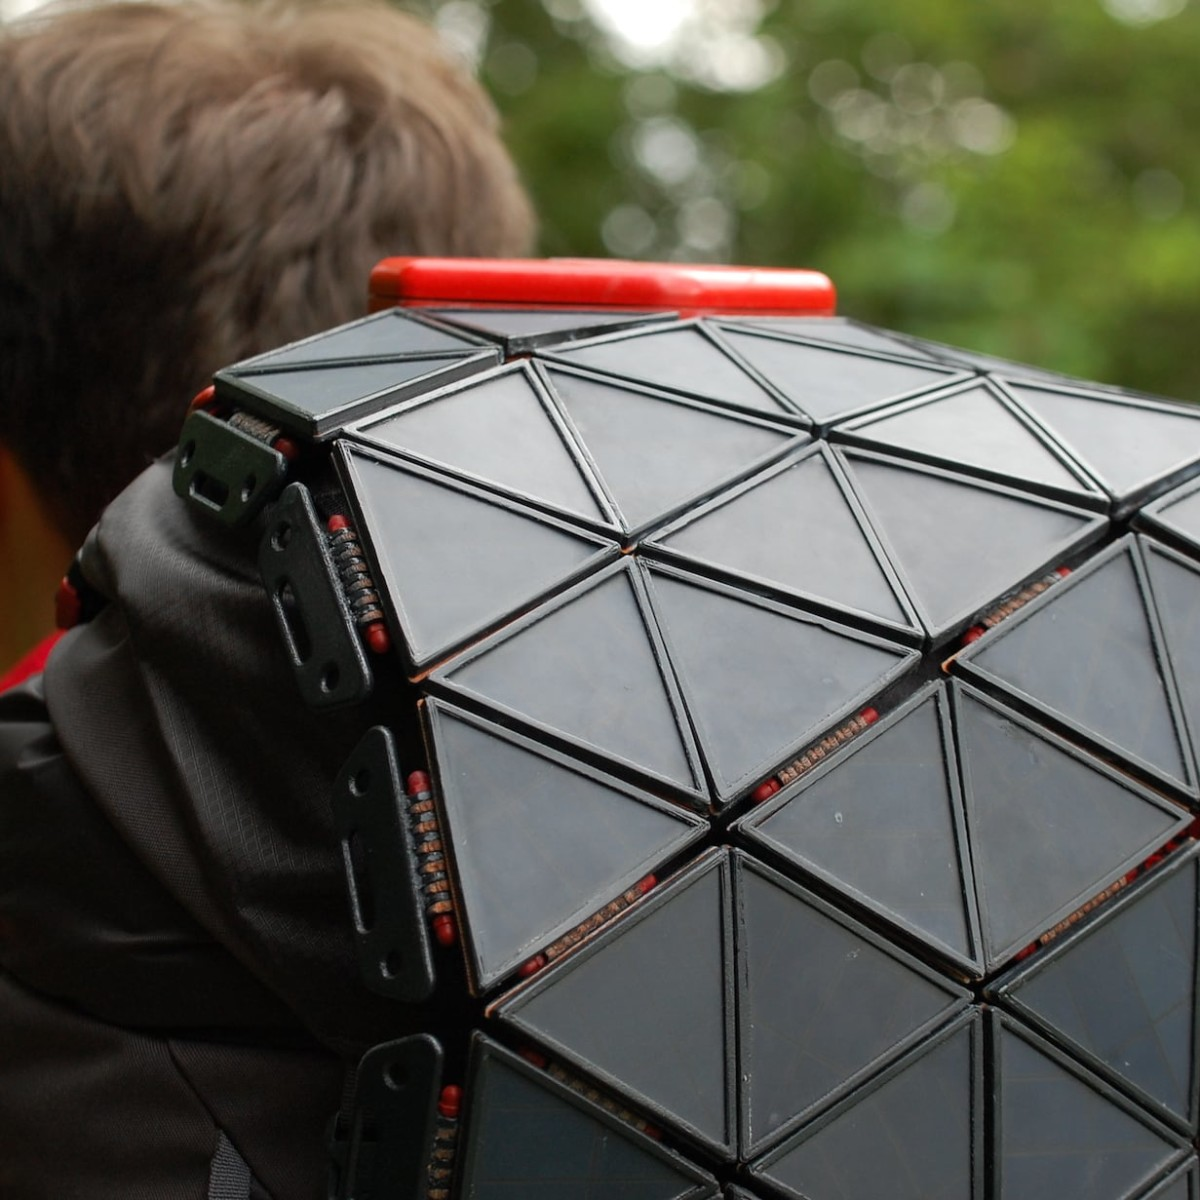 The North Face SunUp Solar Backpack offers an efficient way to obtain energy while backpacking